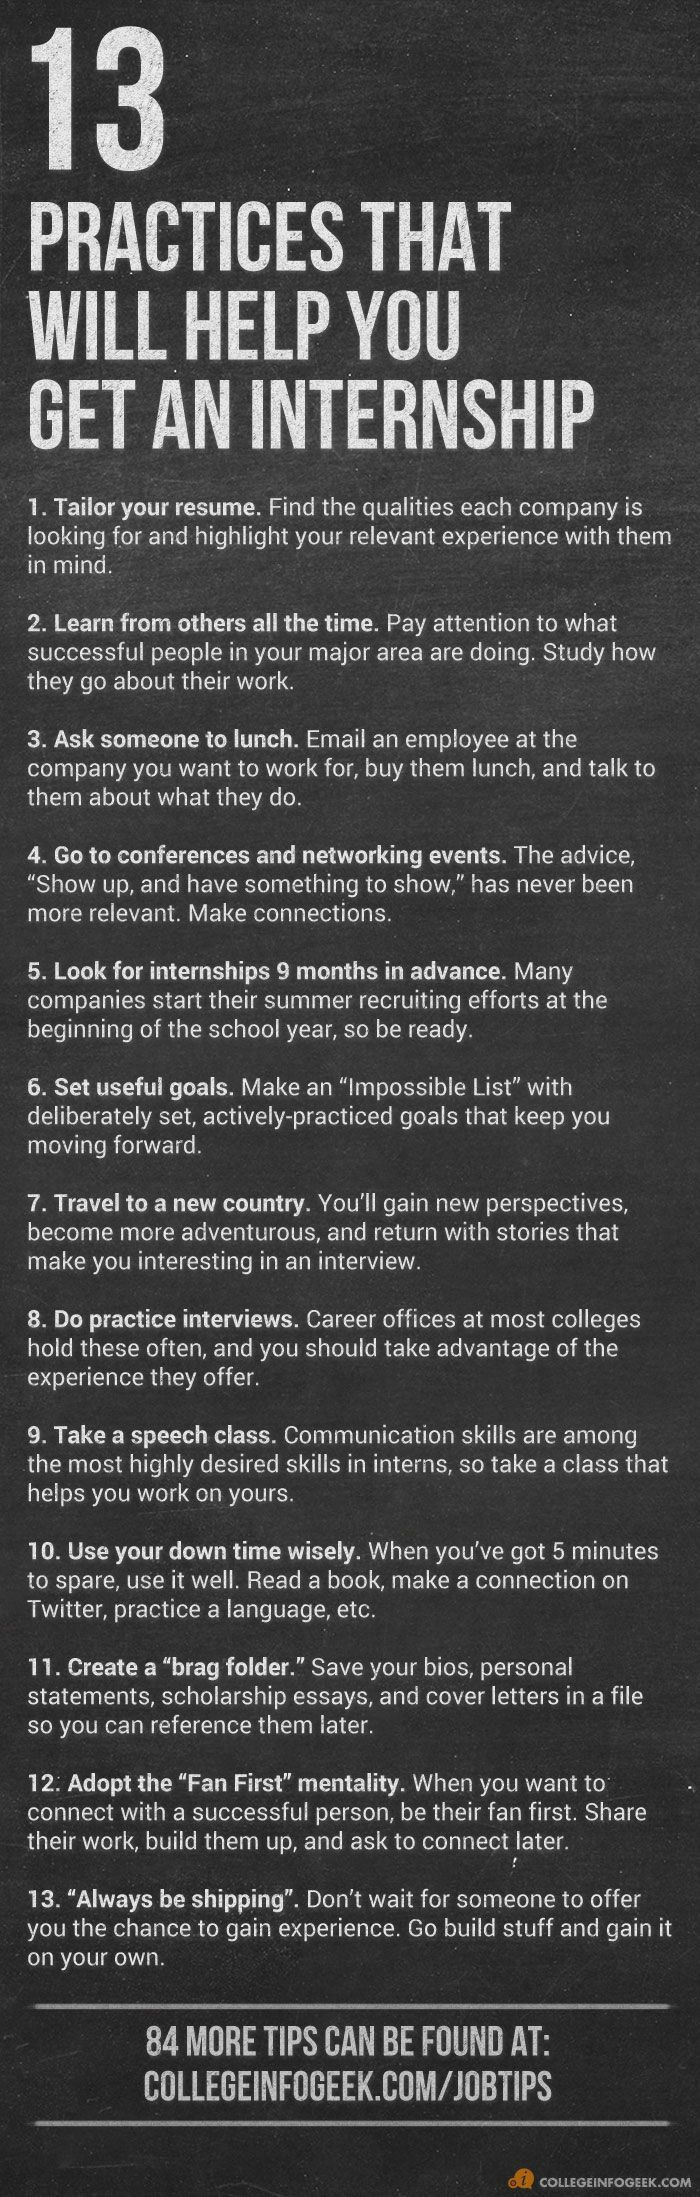 13 tips that will help with your #college #internship search! (84 more on the article) #career Career Tips